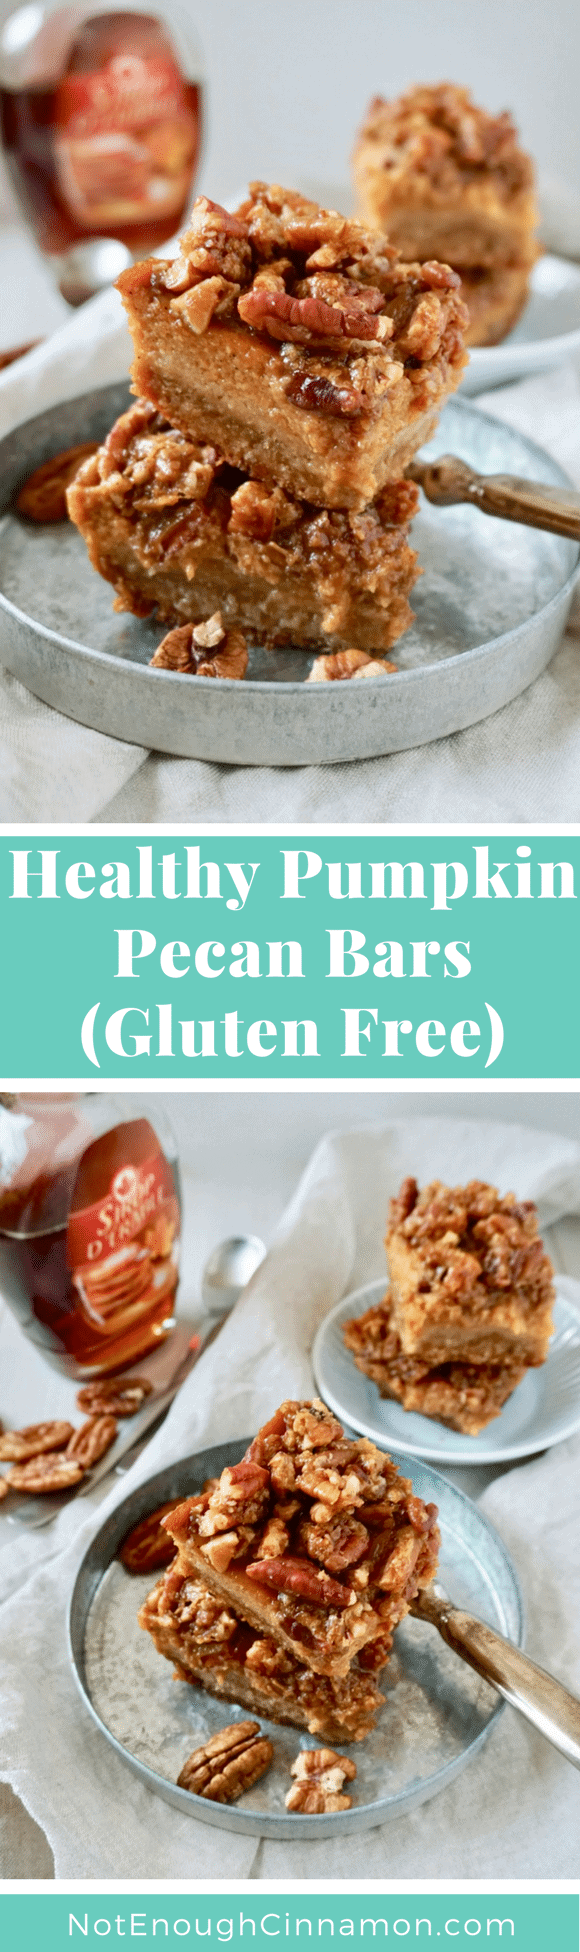 Healthy Pumpkin Pecan Bars – These easy pecan bars are the perfect light dessert for Thanksgiving or anytime during the holidays! #glutenfree #dairyfree #refinedsugarfree #cleaneating, #thanksgivingdesserts, #thanksgivingrecipes, #healthythanksgiving